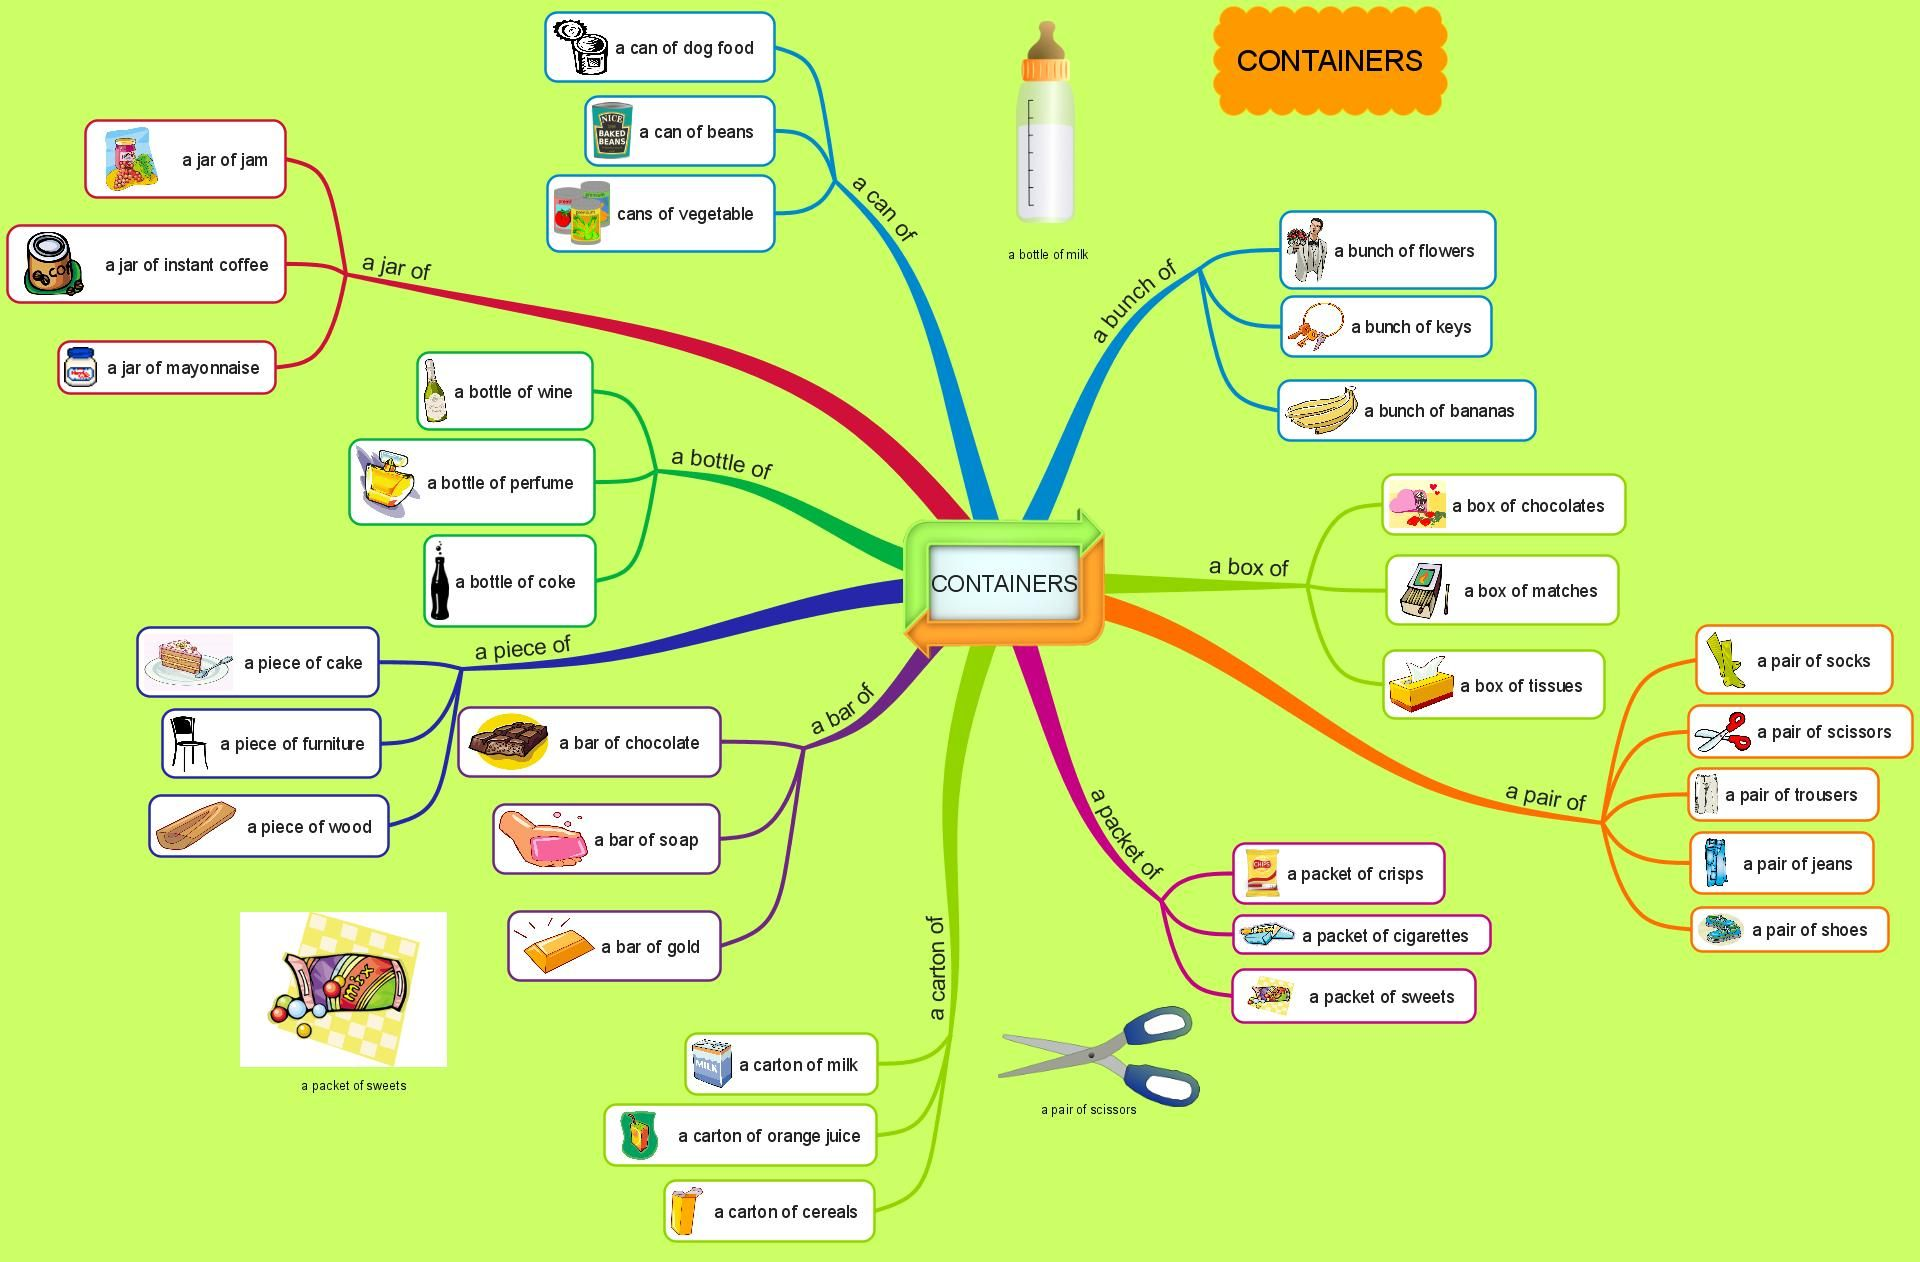 Containers Mind Map